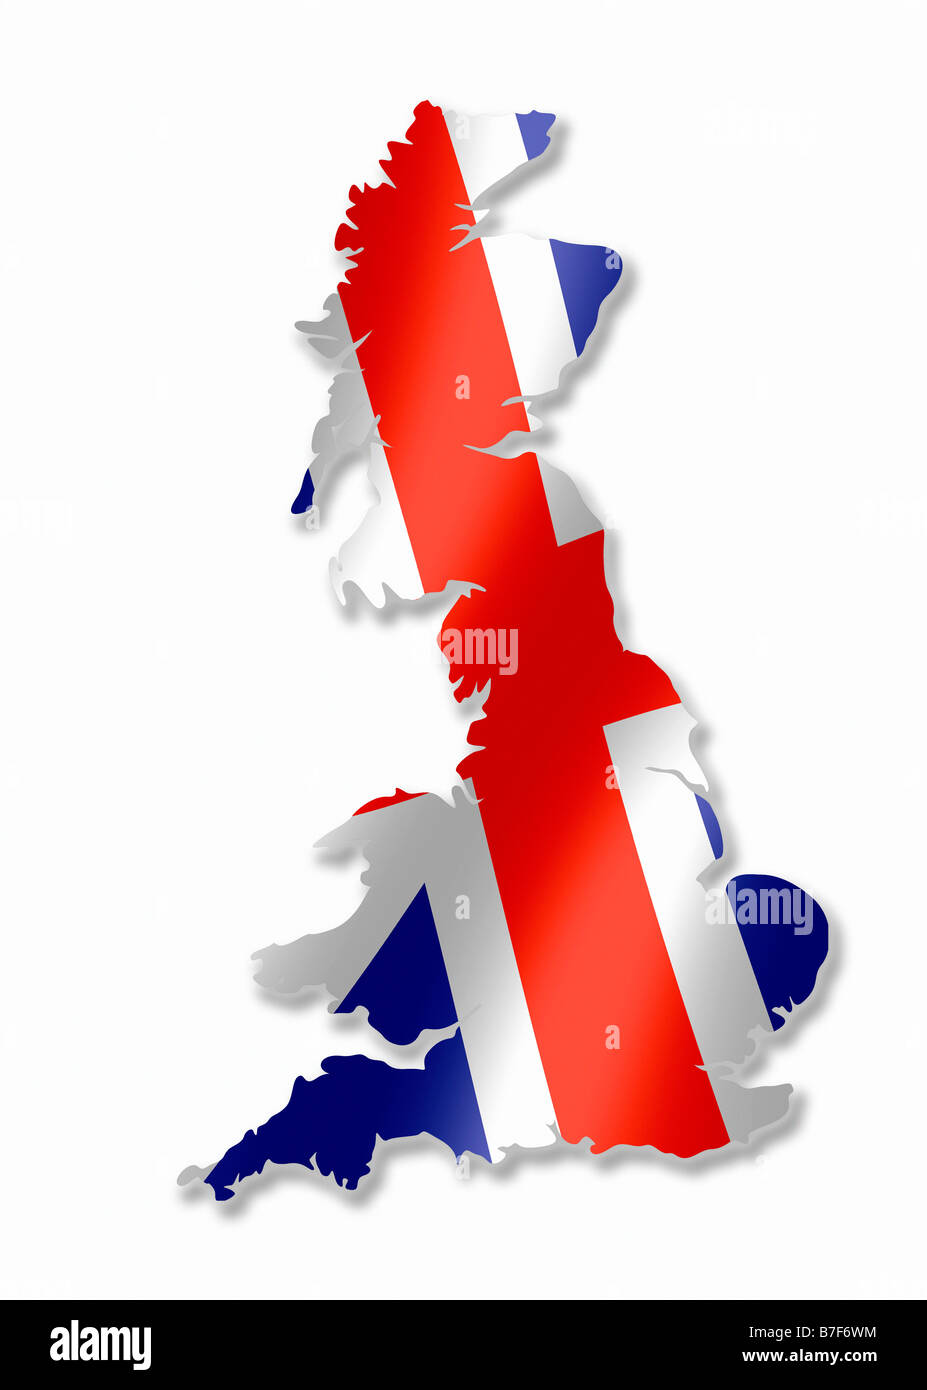 Britain England Map.Uk United Kingdom Great Britain England Scotland Country Map Outline